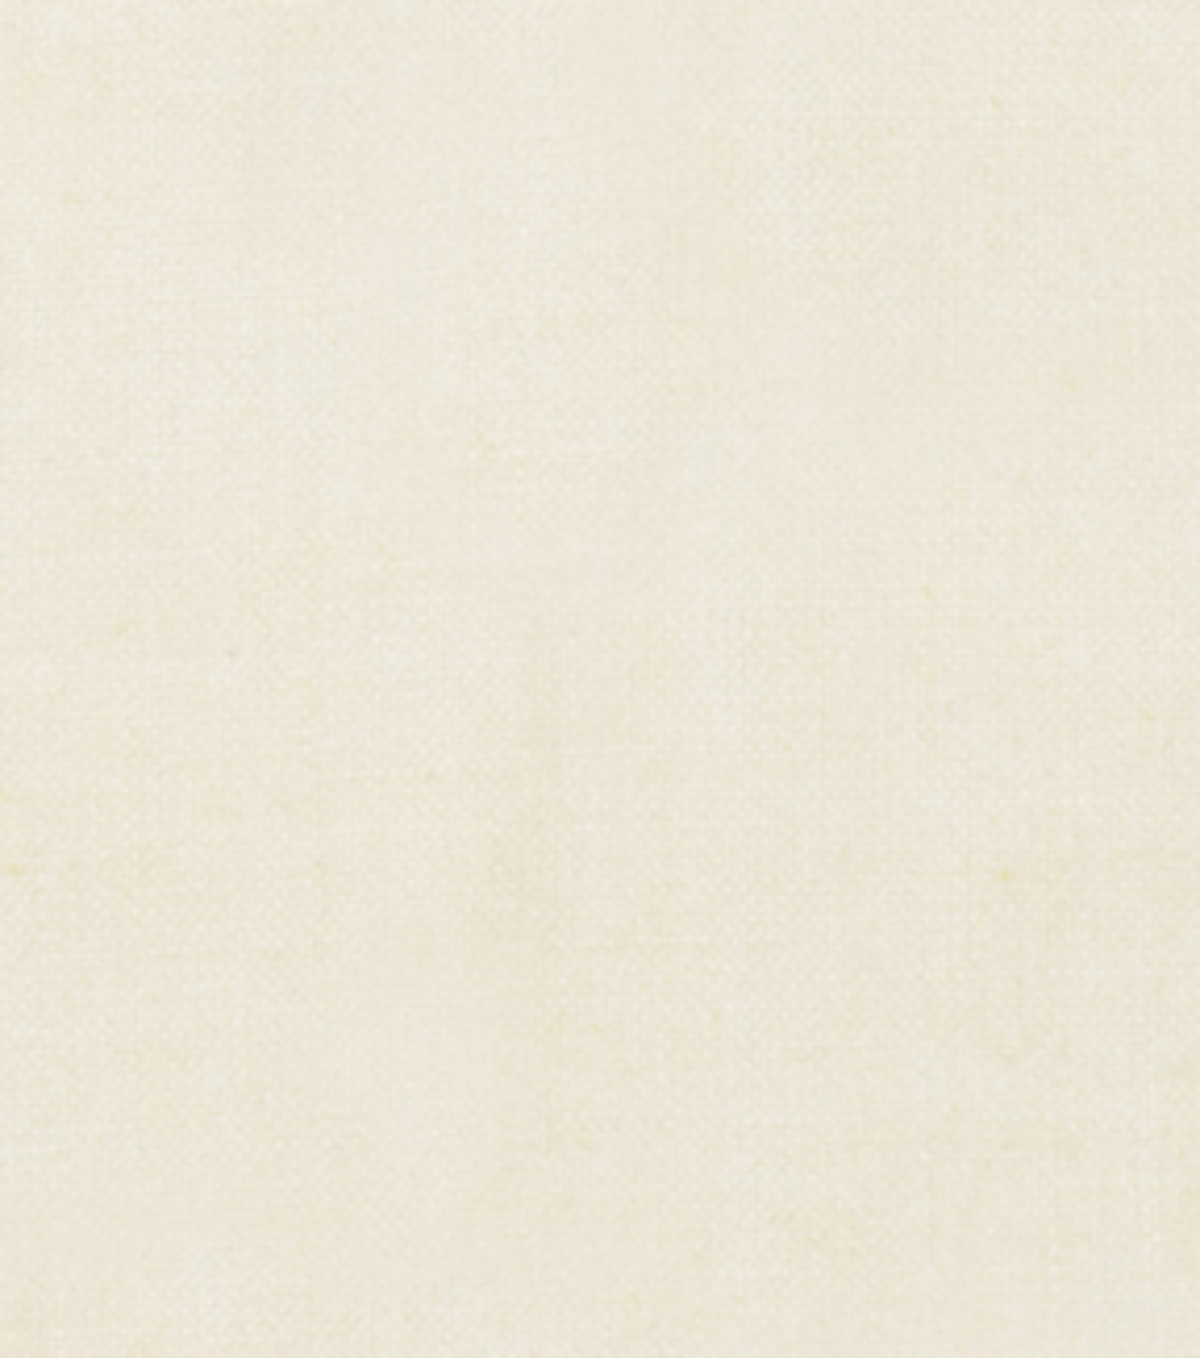 Home Decor 8\u0022x8\u0022 Fabric Swatch-Signature Series Sigourney Ivory